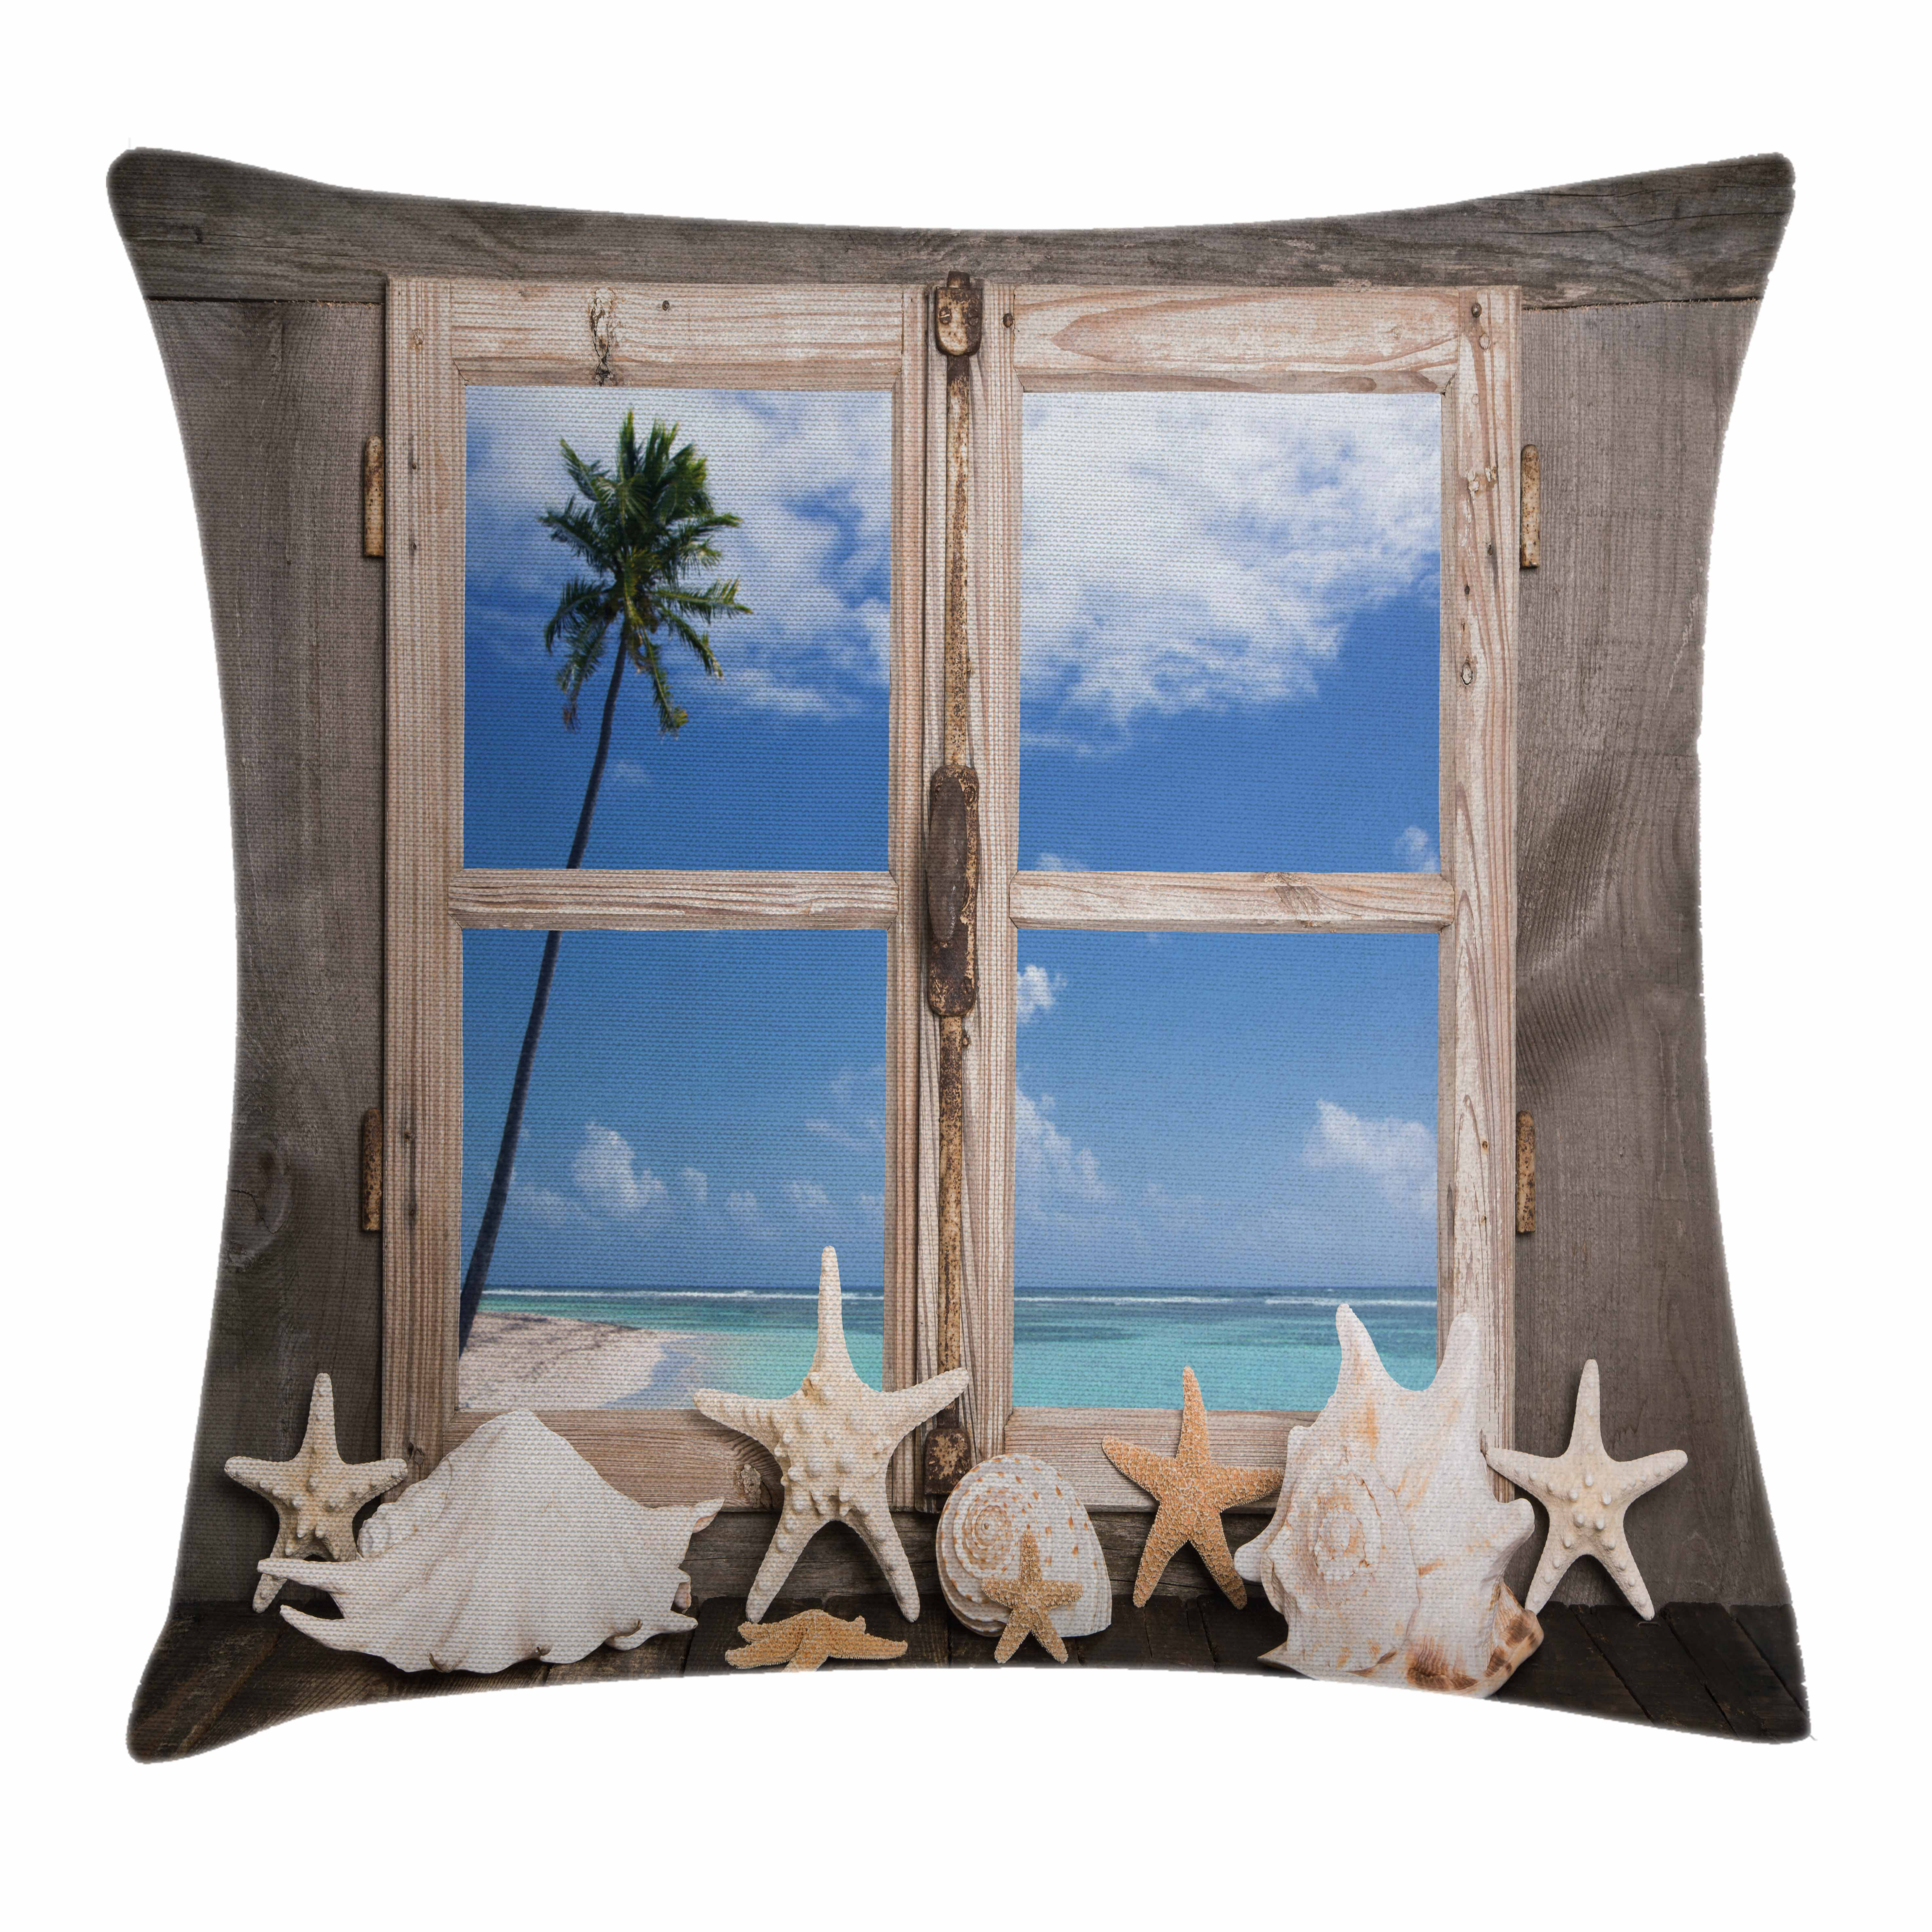 Beach Decor Throw Pillow Cushion Cover, Summer Holiday wih Seashells Starfish Palm Tree Ocean Print, Decorative Square Accent Pillow Case, 16 X 16 Inches, Light Brown Sky Blue and White, by Ambesonne